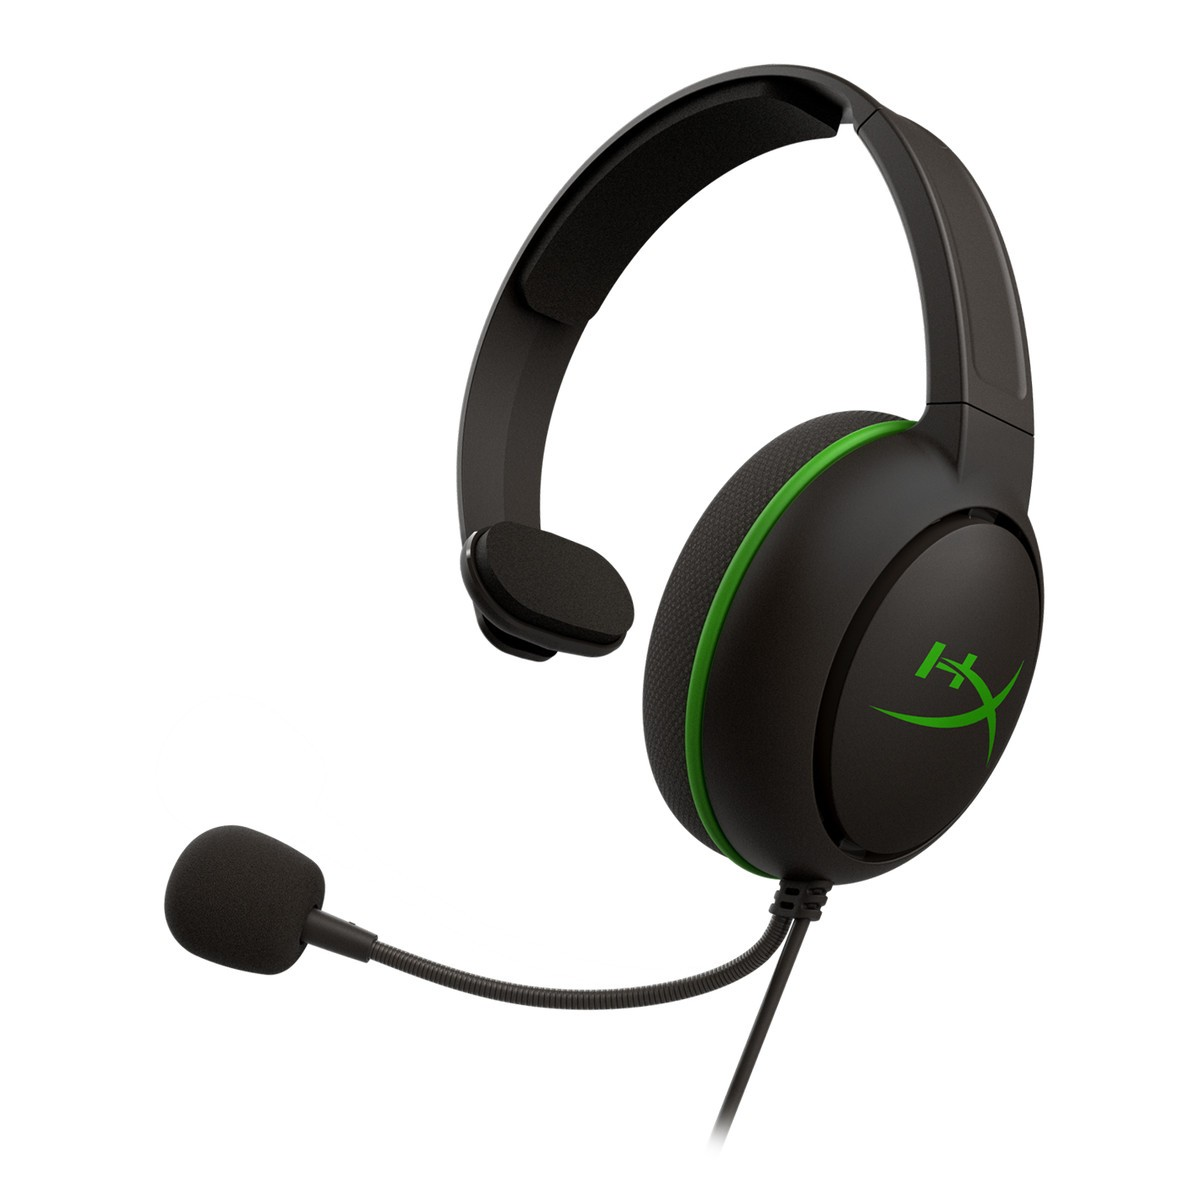 Headset Gamer HyperX CloudX Chat, Xbox, 3.5mm, Black/Green, HX-HSCCHX-BK/WW